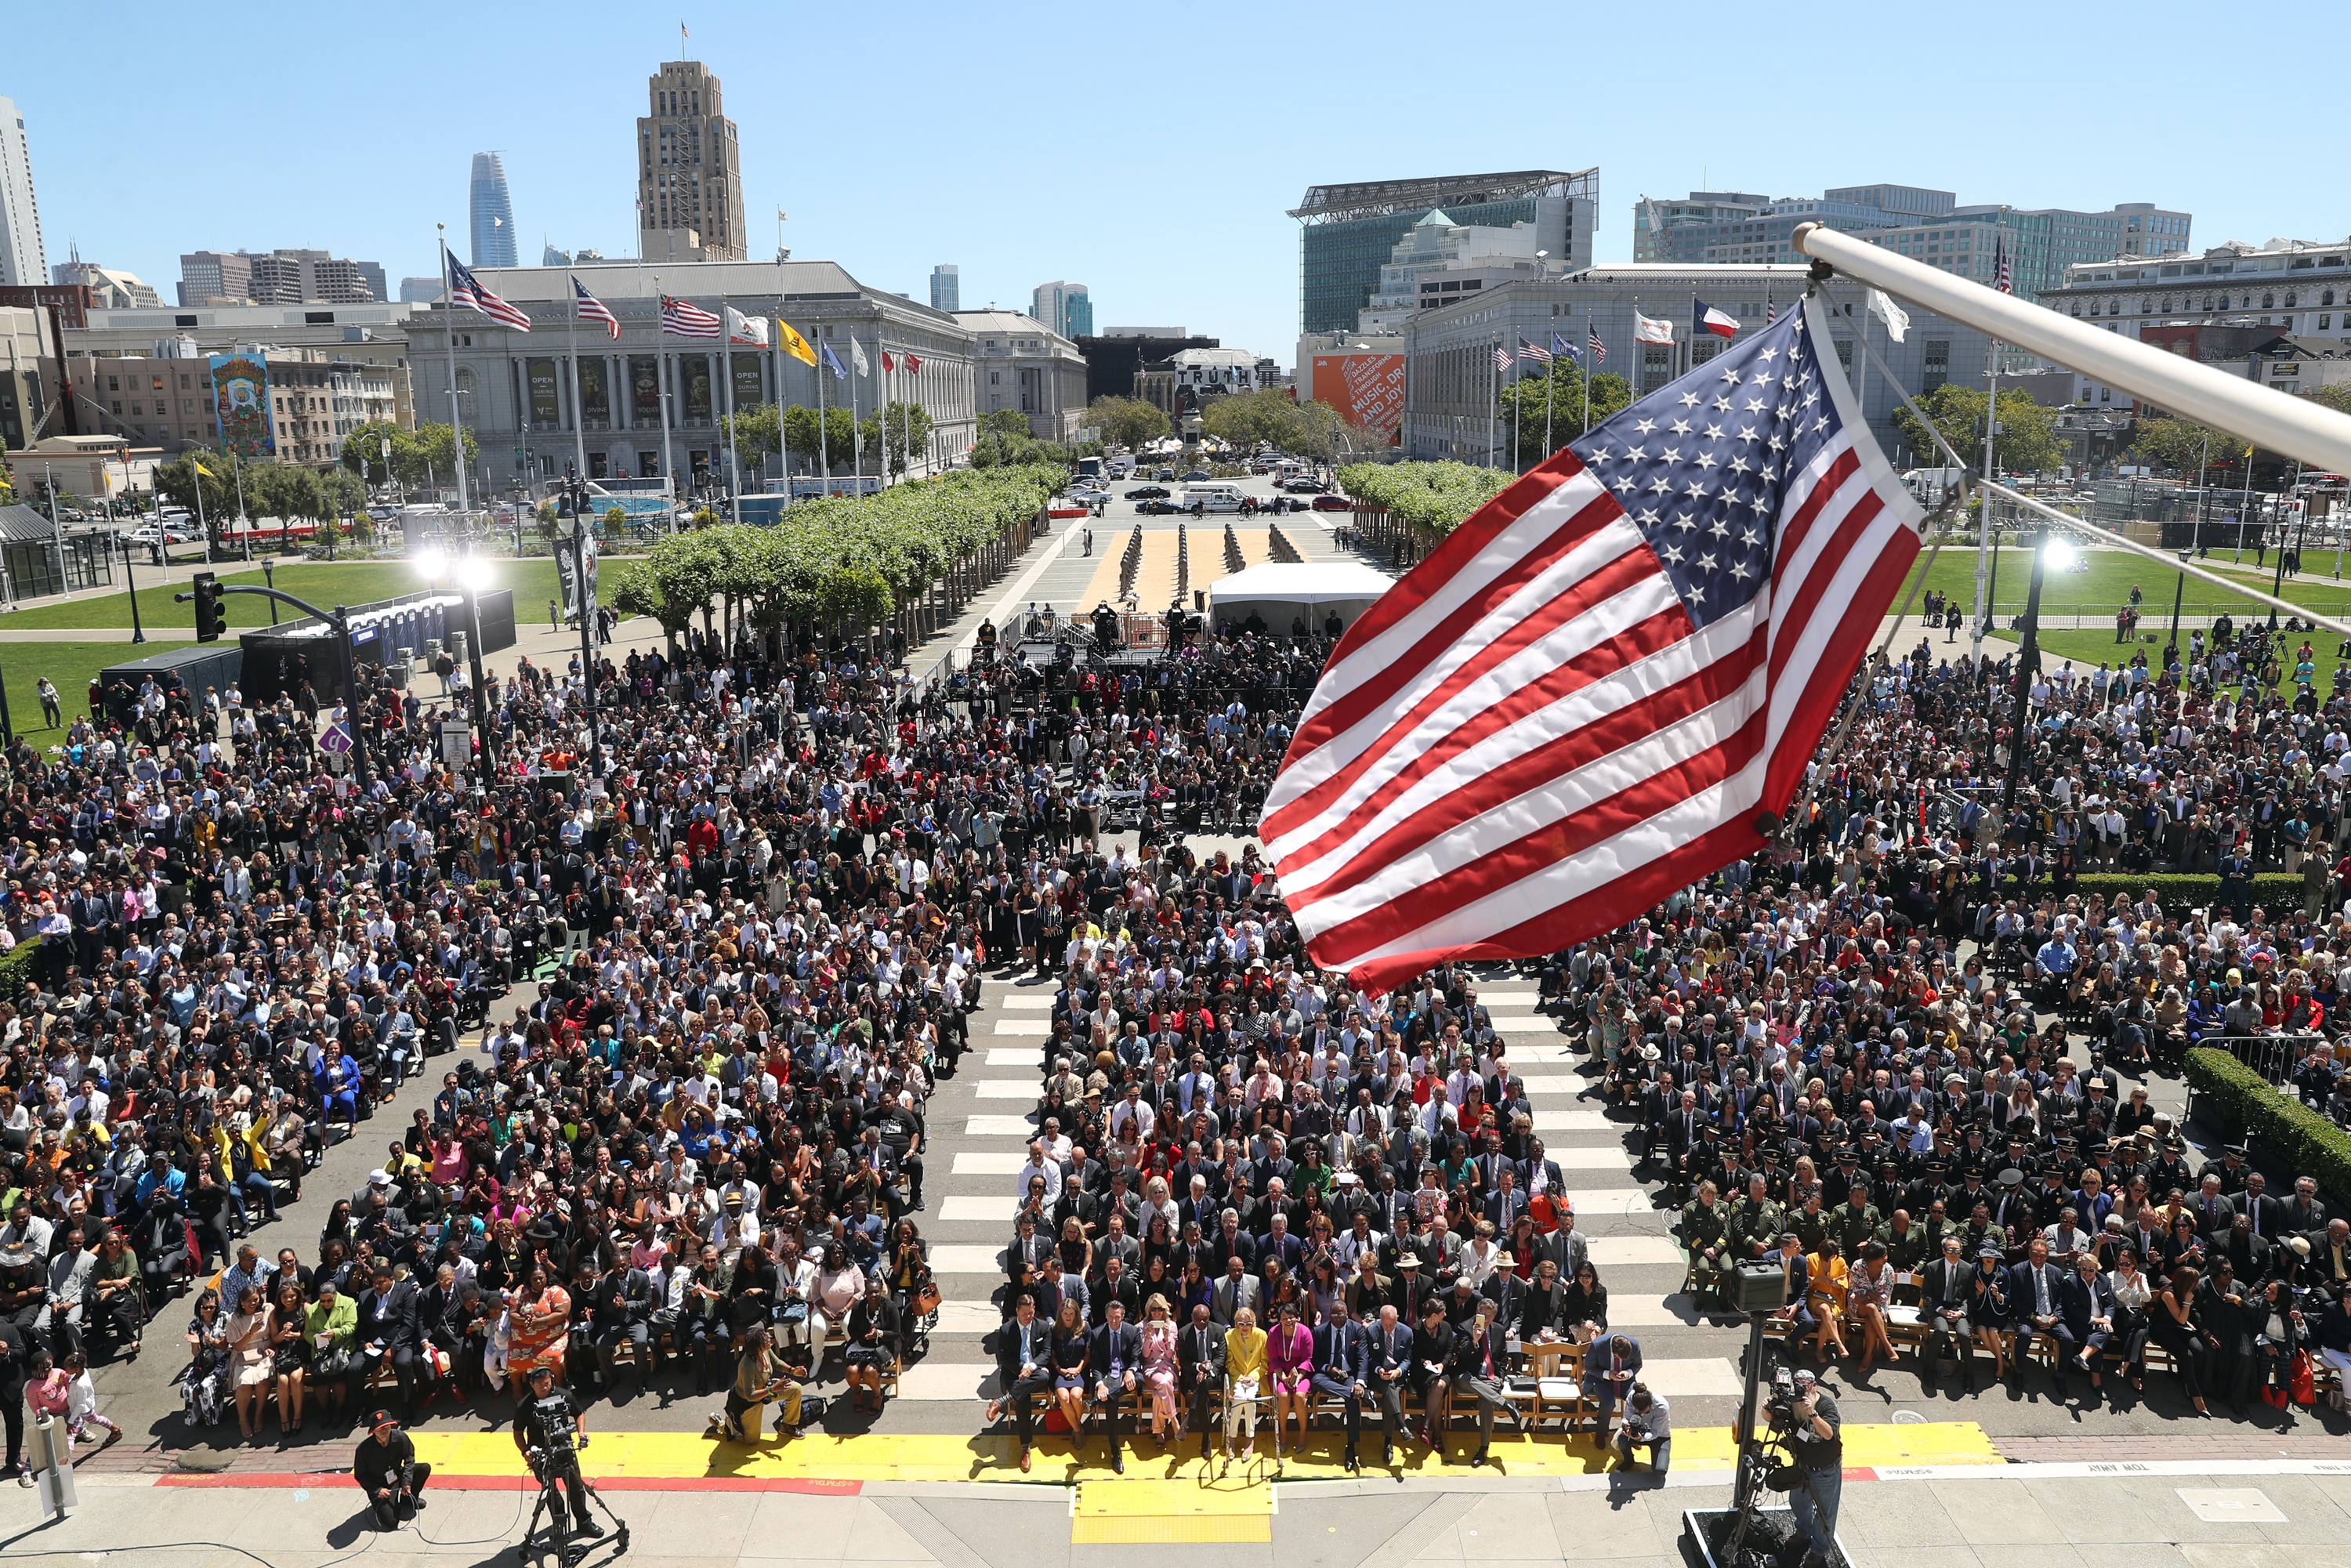 <div class='meta'><div class='origin-logo' data-origin='none'></div><span class='caption-text' data-credit='The Chronicle'>The crowd is seen during the inauguration of San Francisco Mayor London Breed at City Hall in San Francisco on Wednesday, July 11, 2018.</span></div>